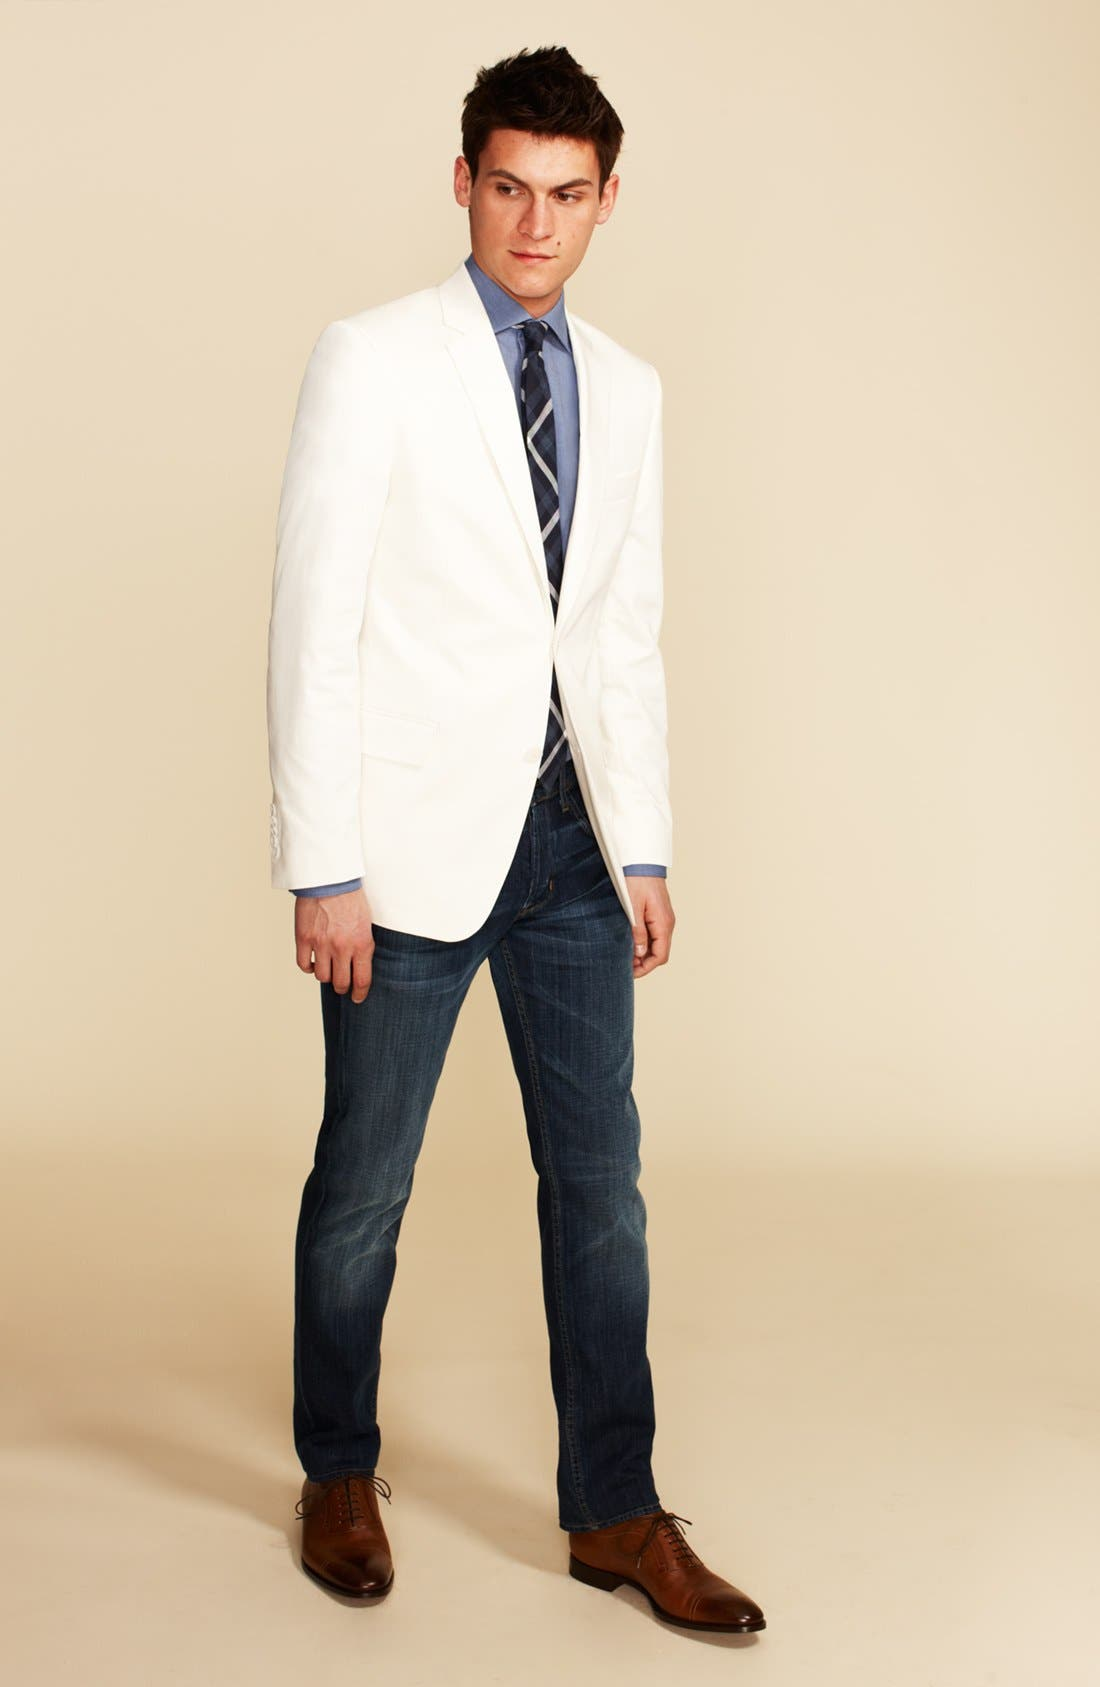 Main Image - John Varvatos Star USA Blazer, 1901 Dress Shirt & Hudson Jeans Straight Leg Jeans